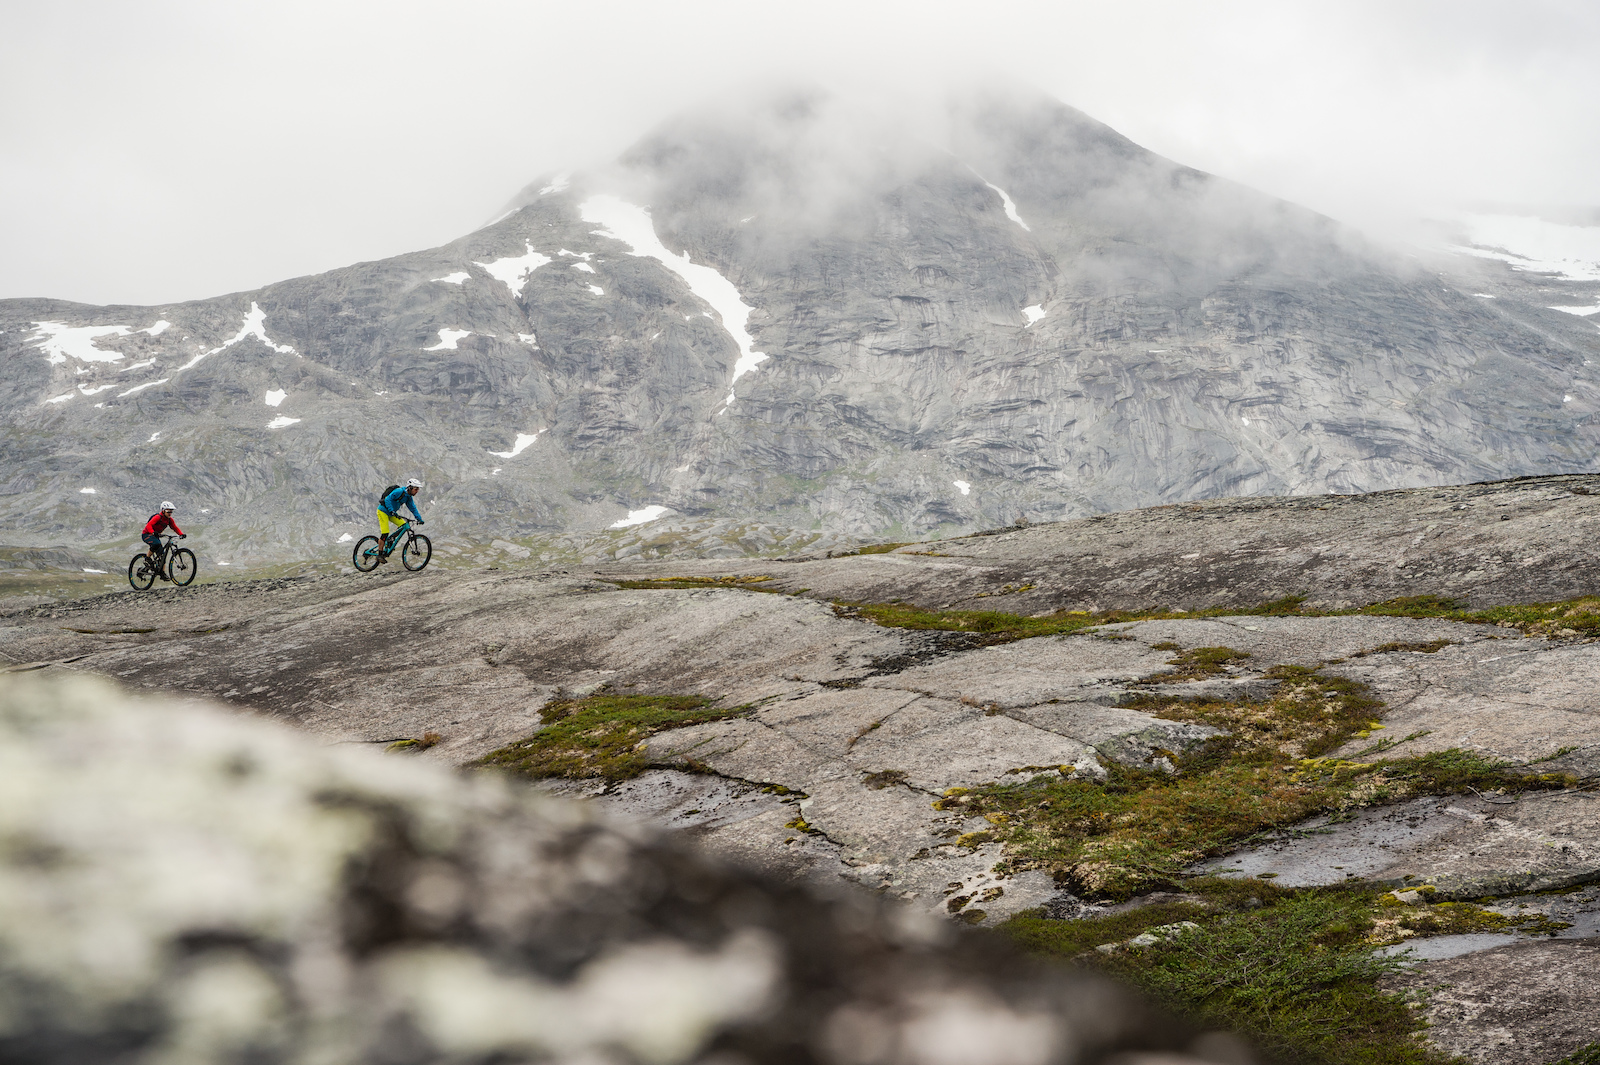 Mikael af Ekenstam and Joey Schulser riding at Reinnesfjellet Norway.